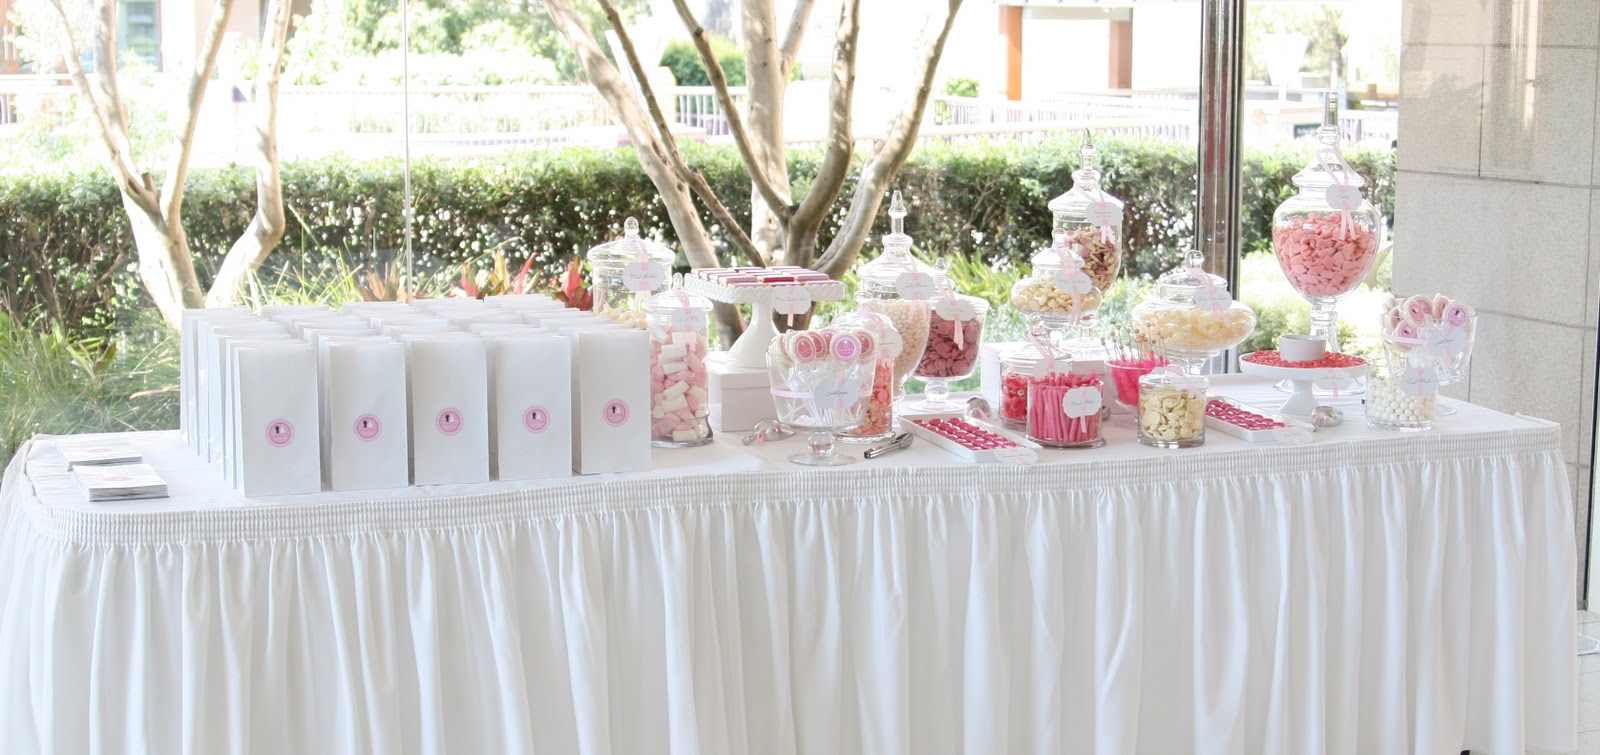 A Pink and White Wedding Candy Table